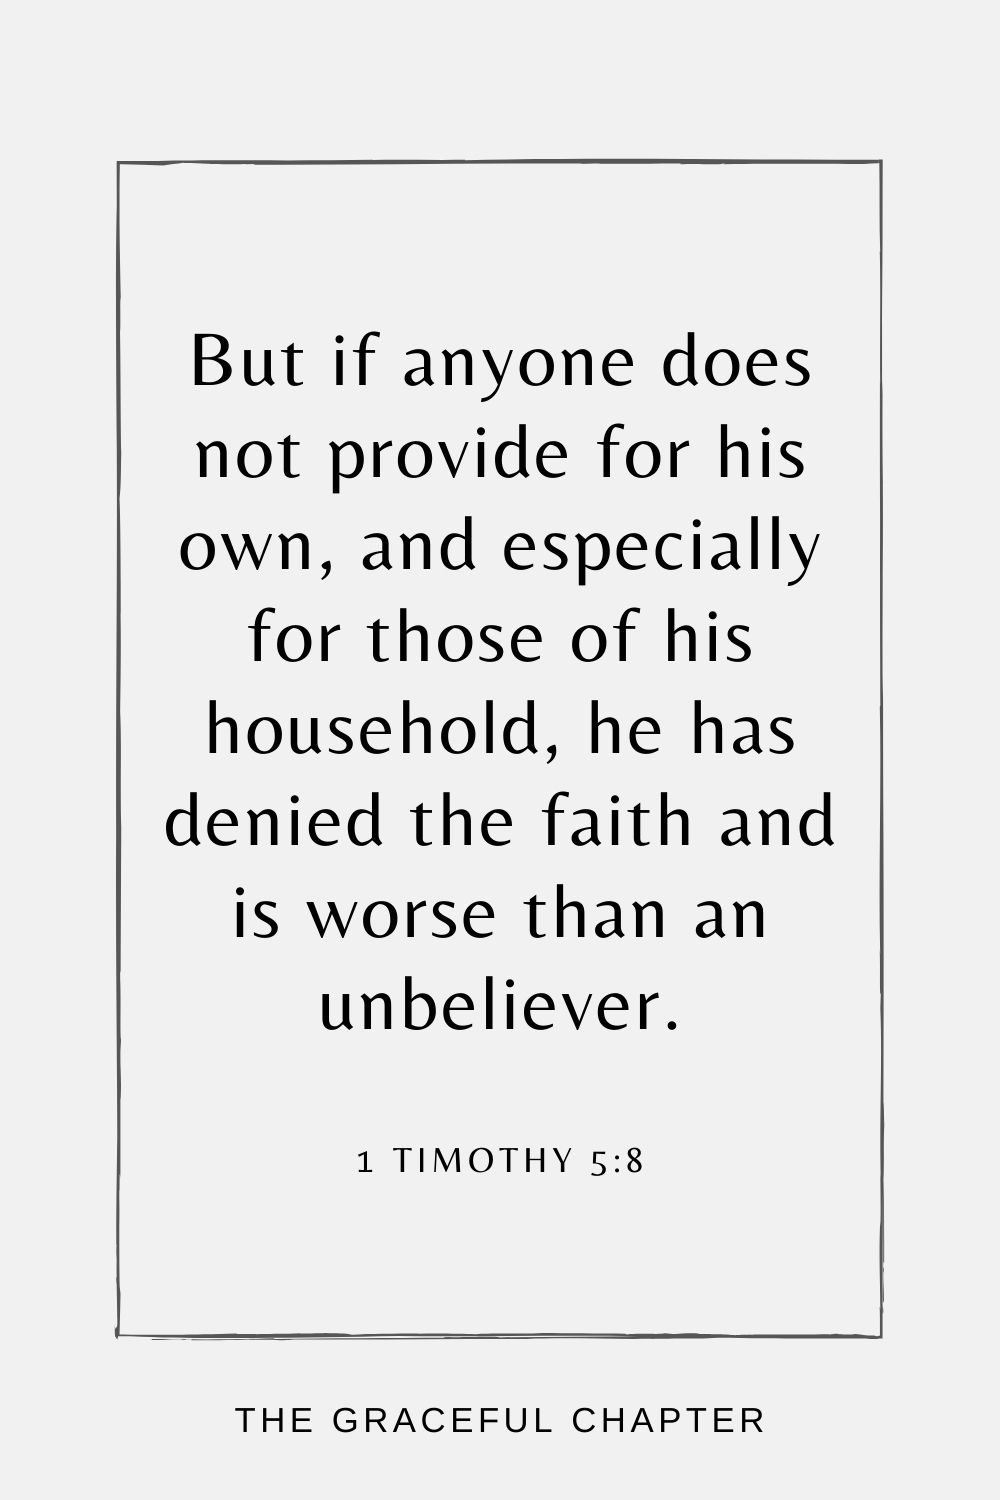 But if anyone does not provide for his own, and especially for those of his household, he has denied the faith and is worse than an unbeliever. 1 Timothy 5:8